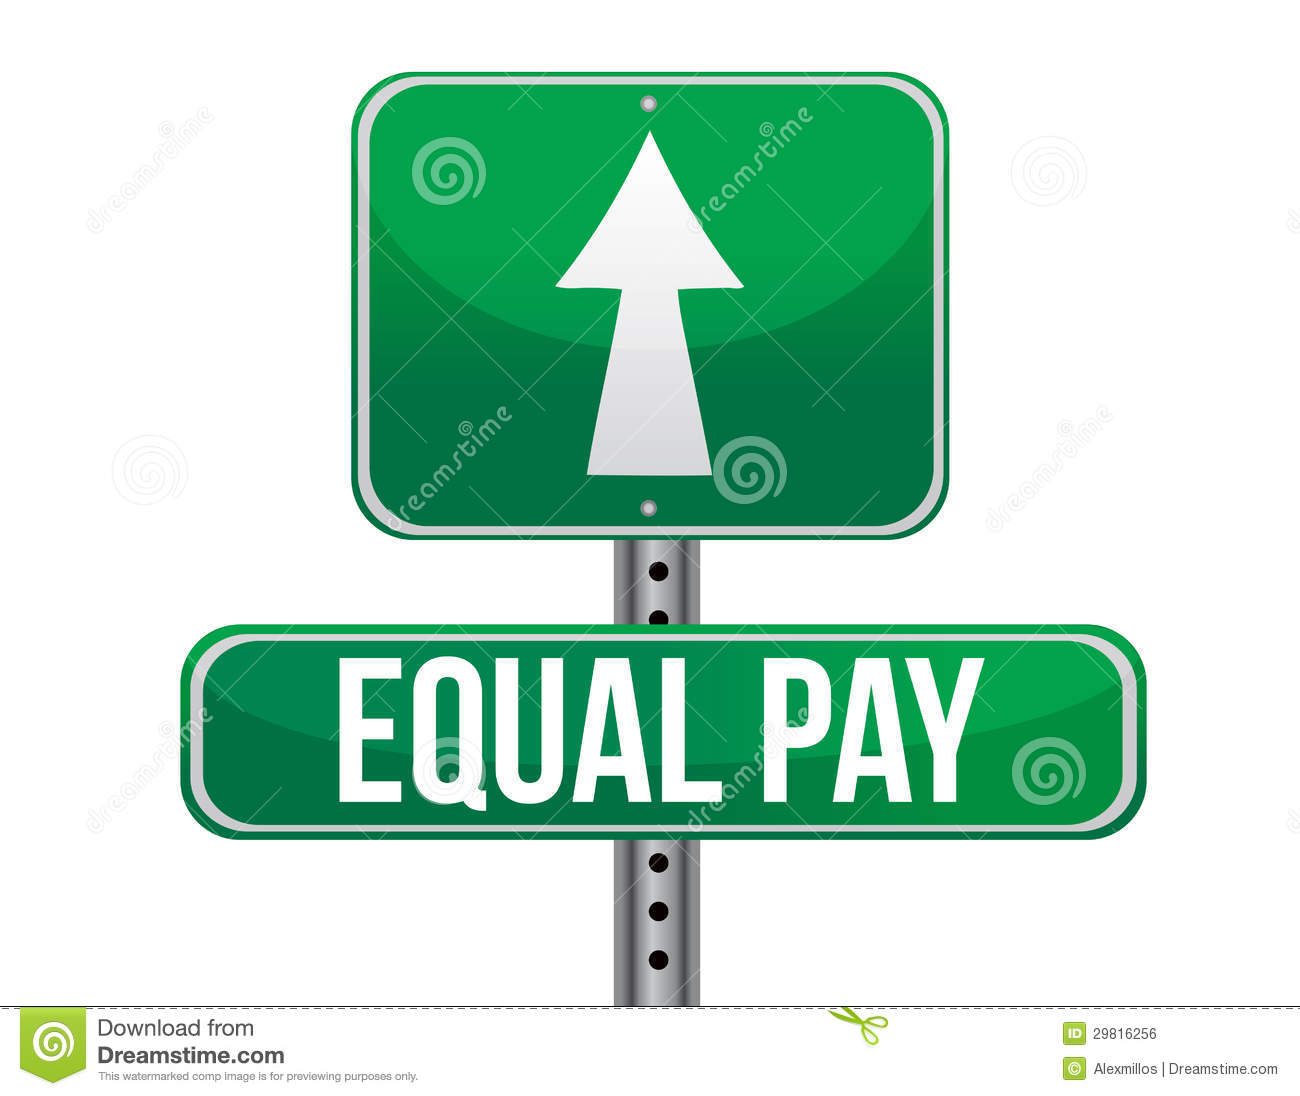 Equal Pay Road Sign Royalty Free Stock Image - Image: 29816256